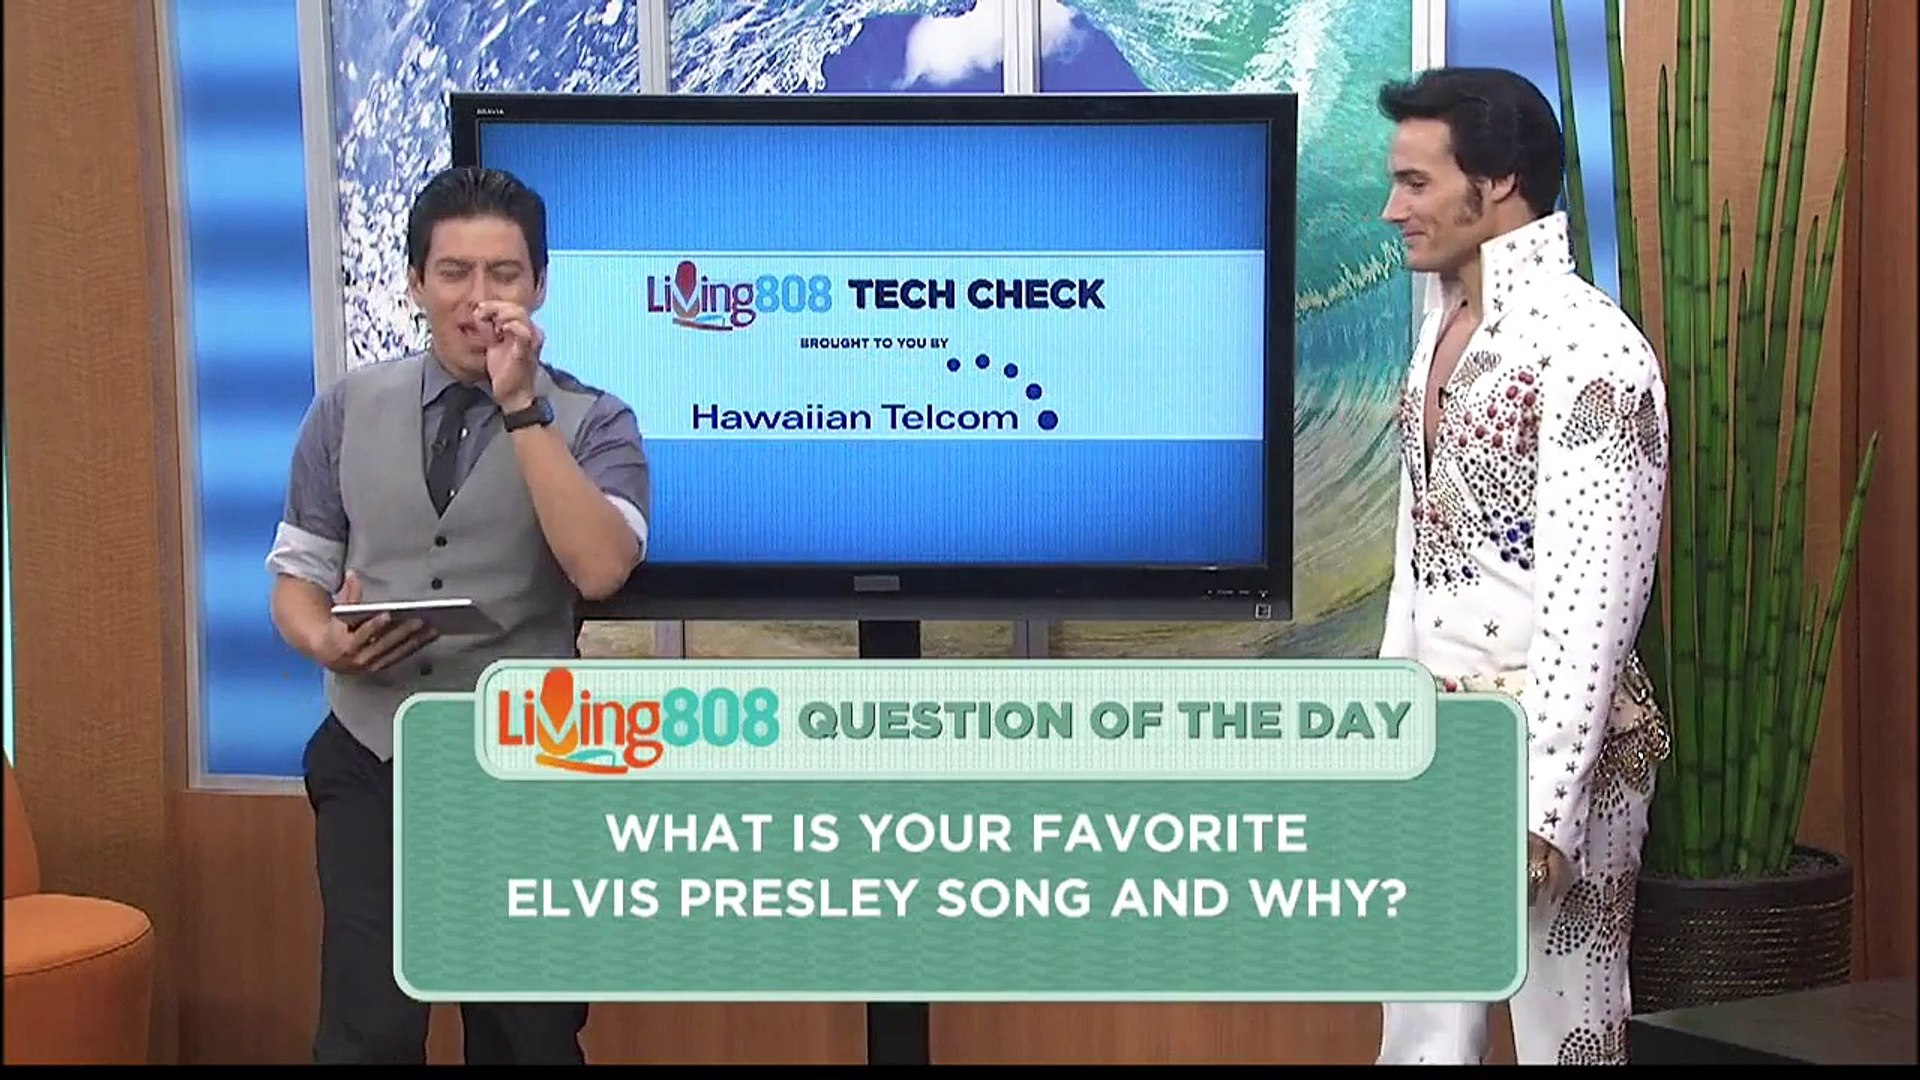 Living808 - What is your favorite Elvis Presley song and why?